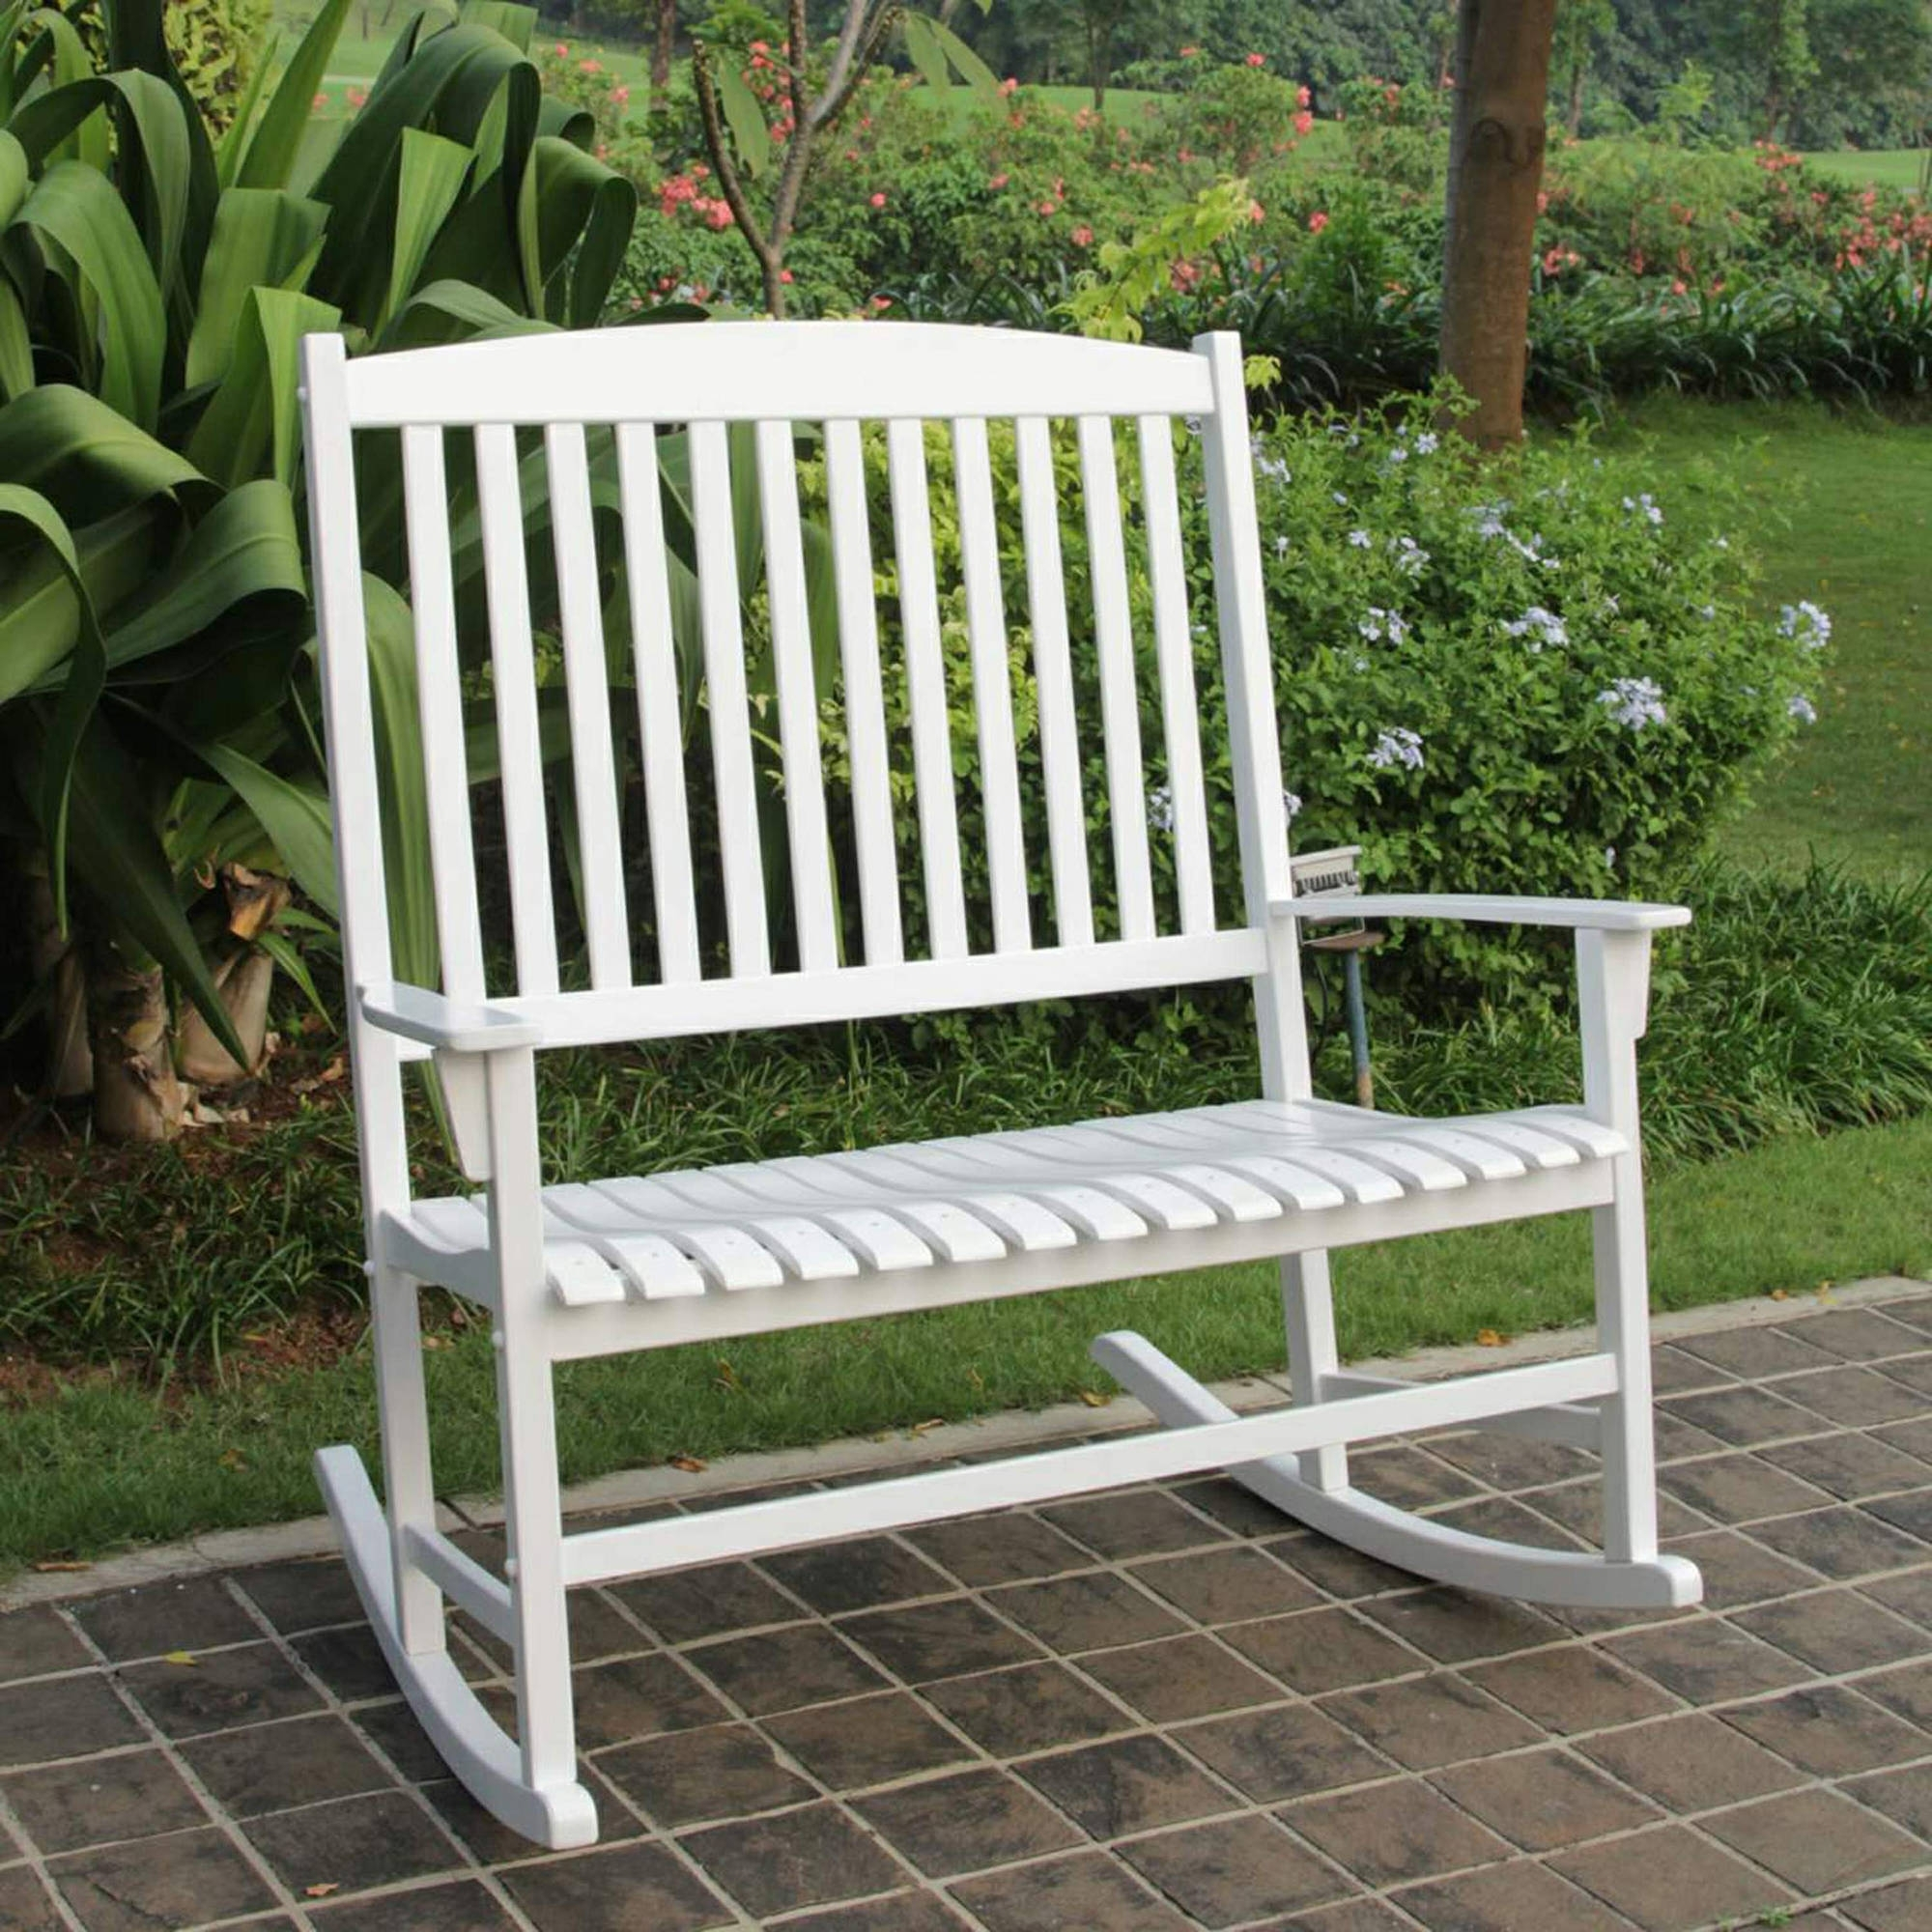 Outdoor Rocking Chairs Inside Fashionable Patio Loveseat White Hardwood Outdoor Rocking Chair For (View 9 of 15)